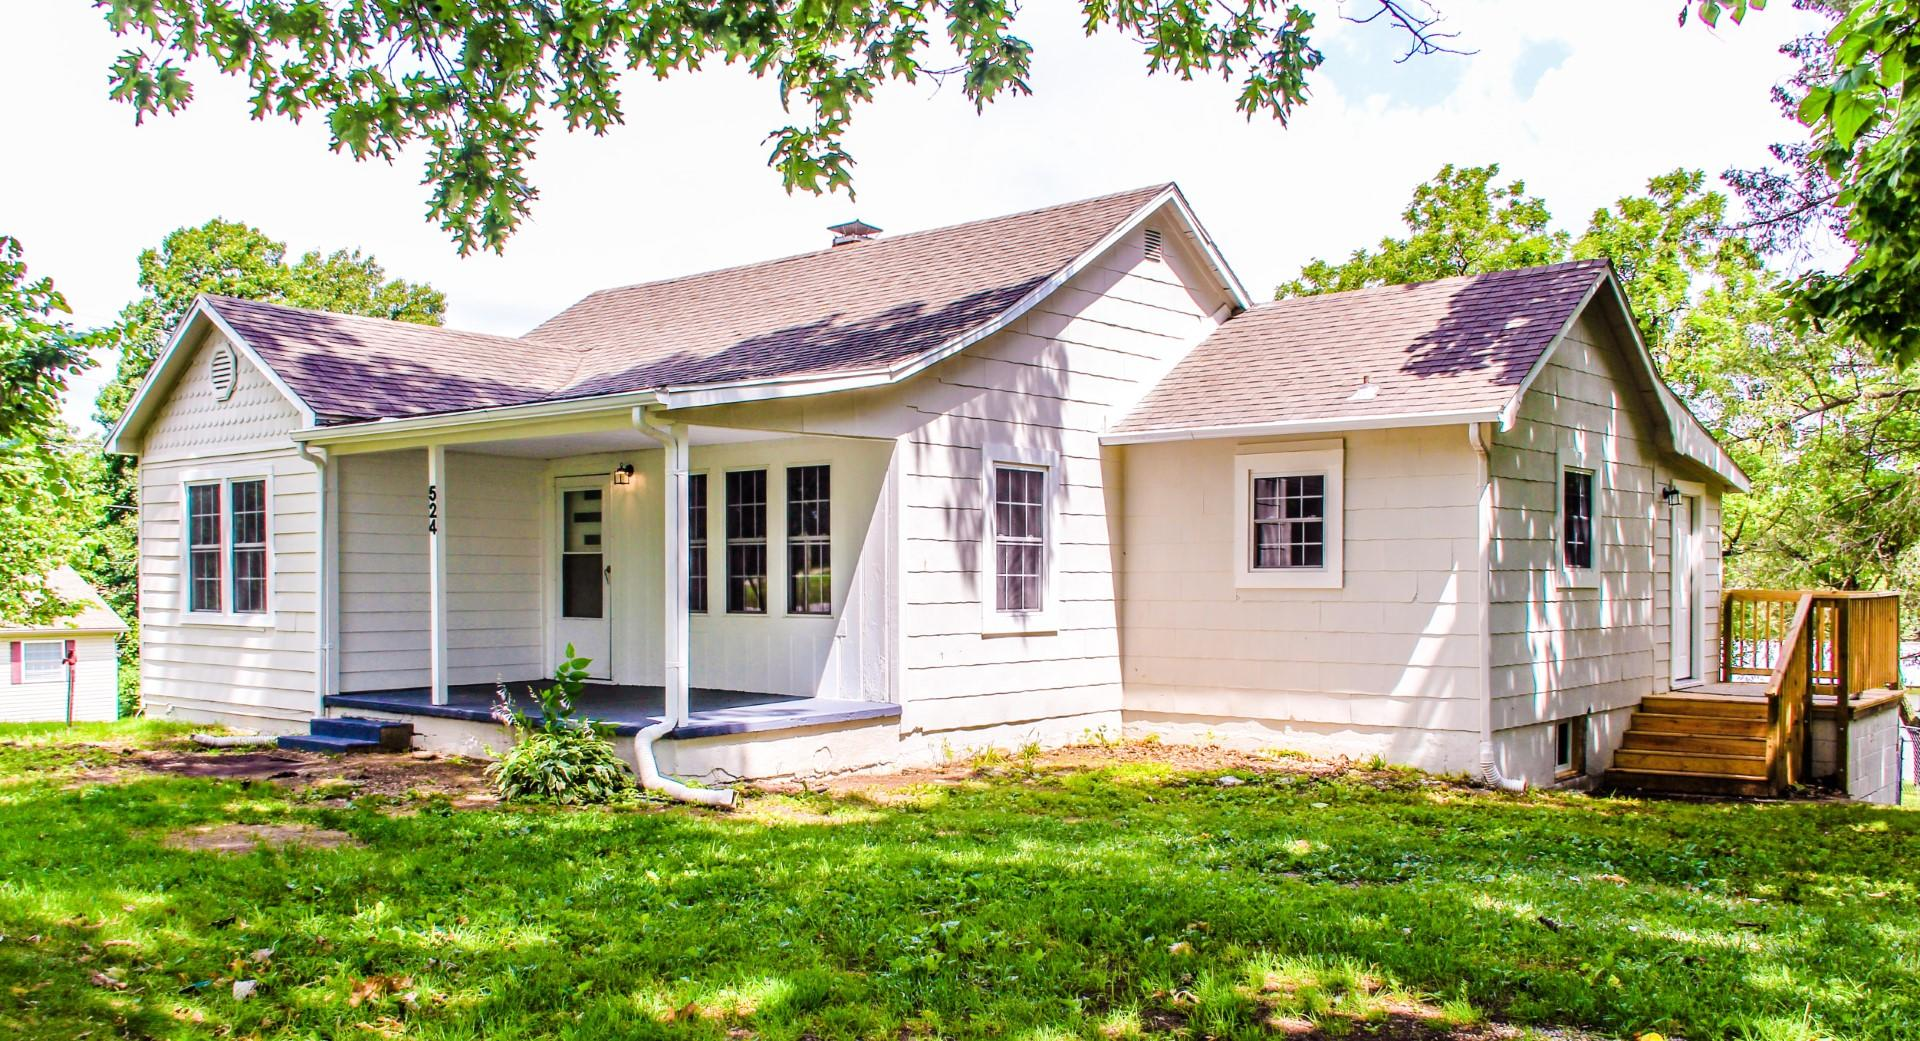 524 East Daugherty Neosho, MO 64850